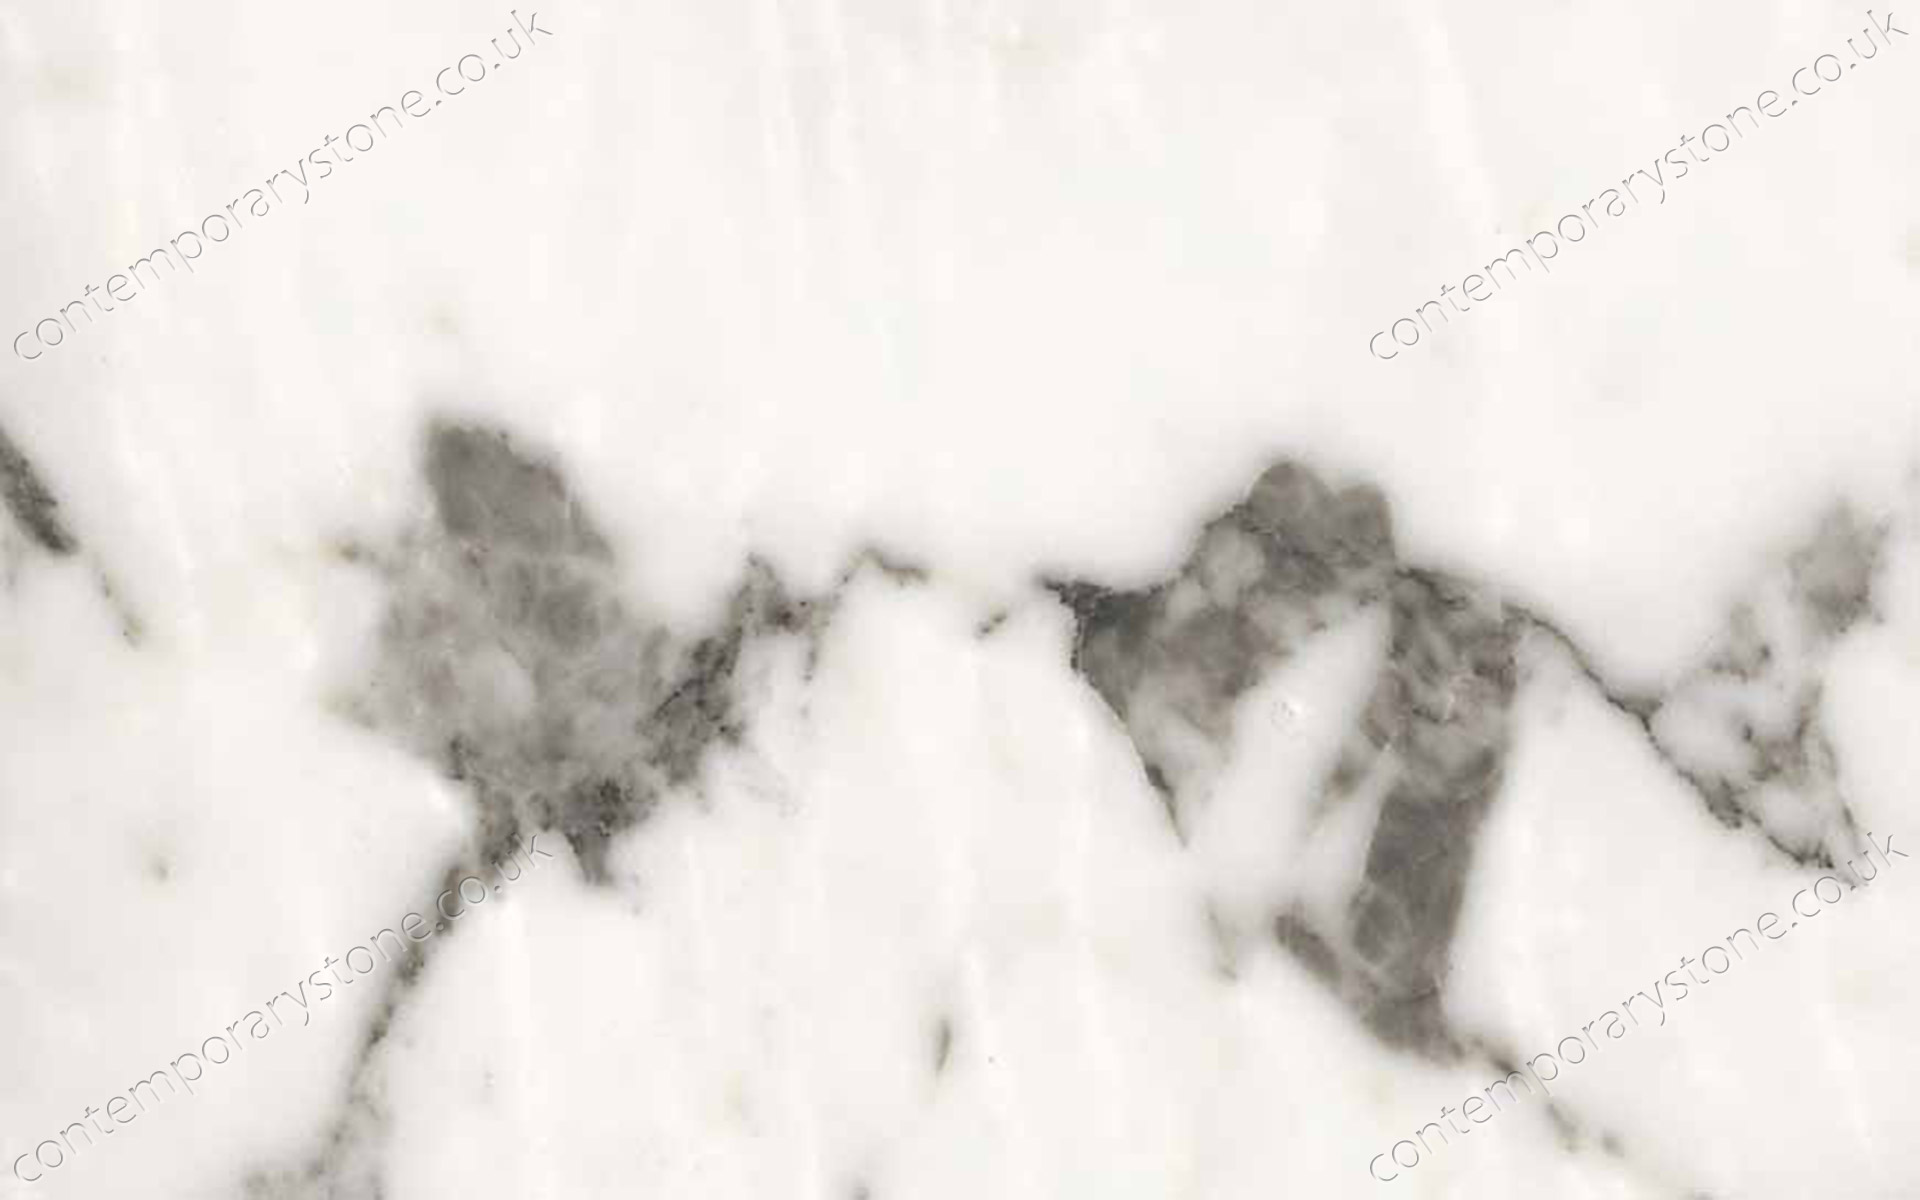 Arabescato Cervaiole marble close-up